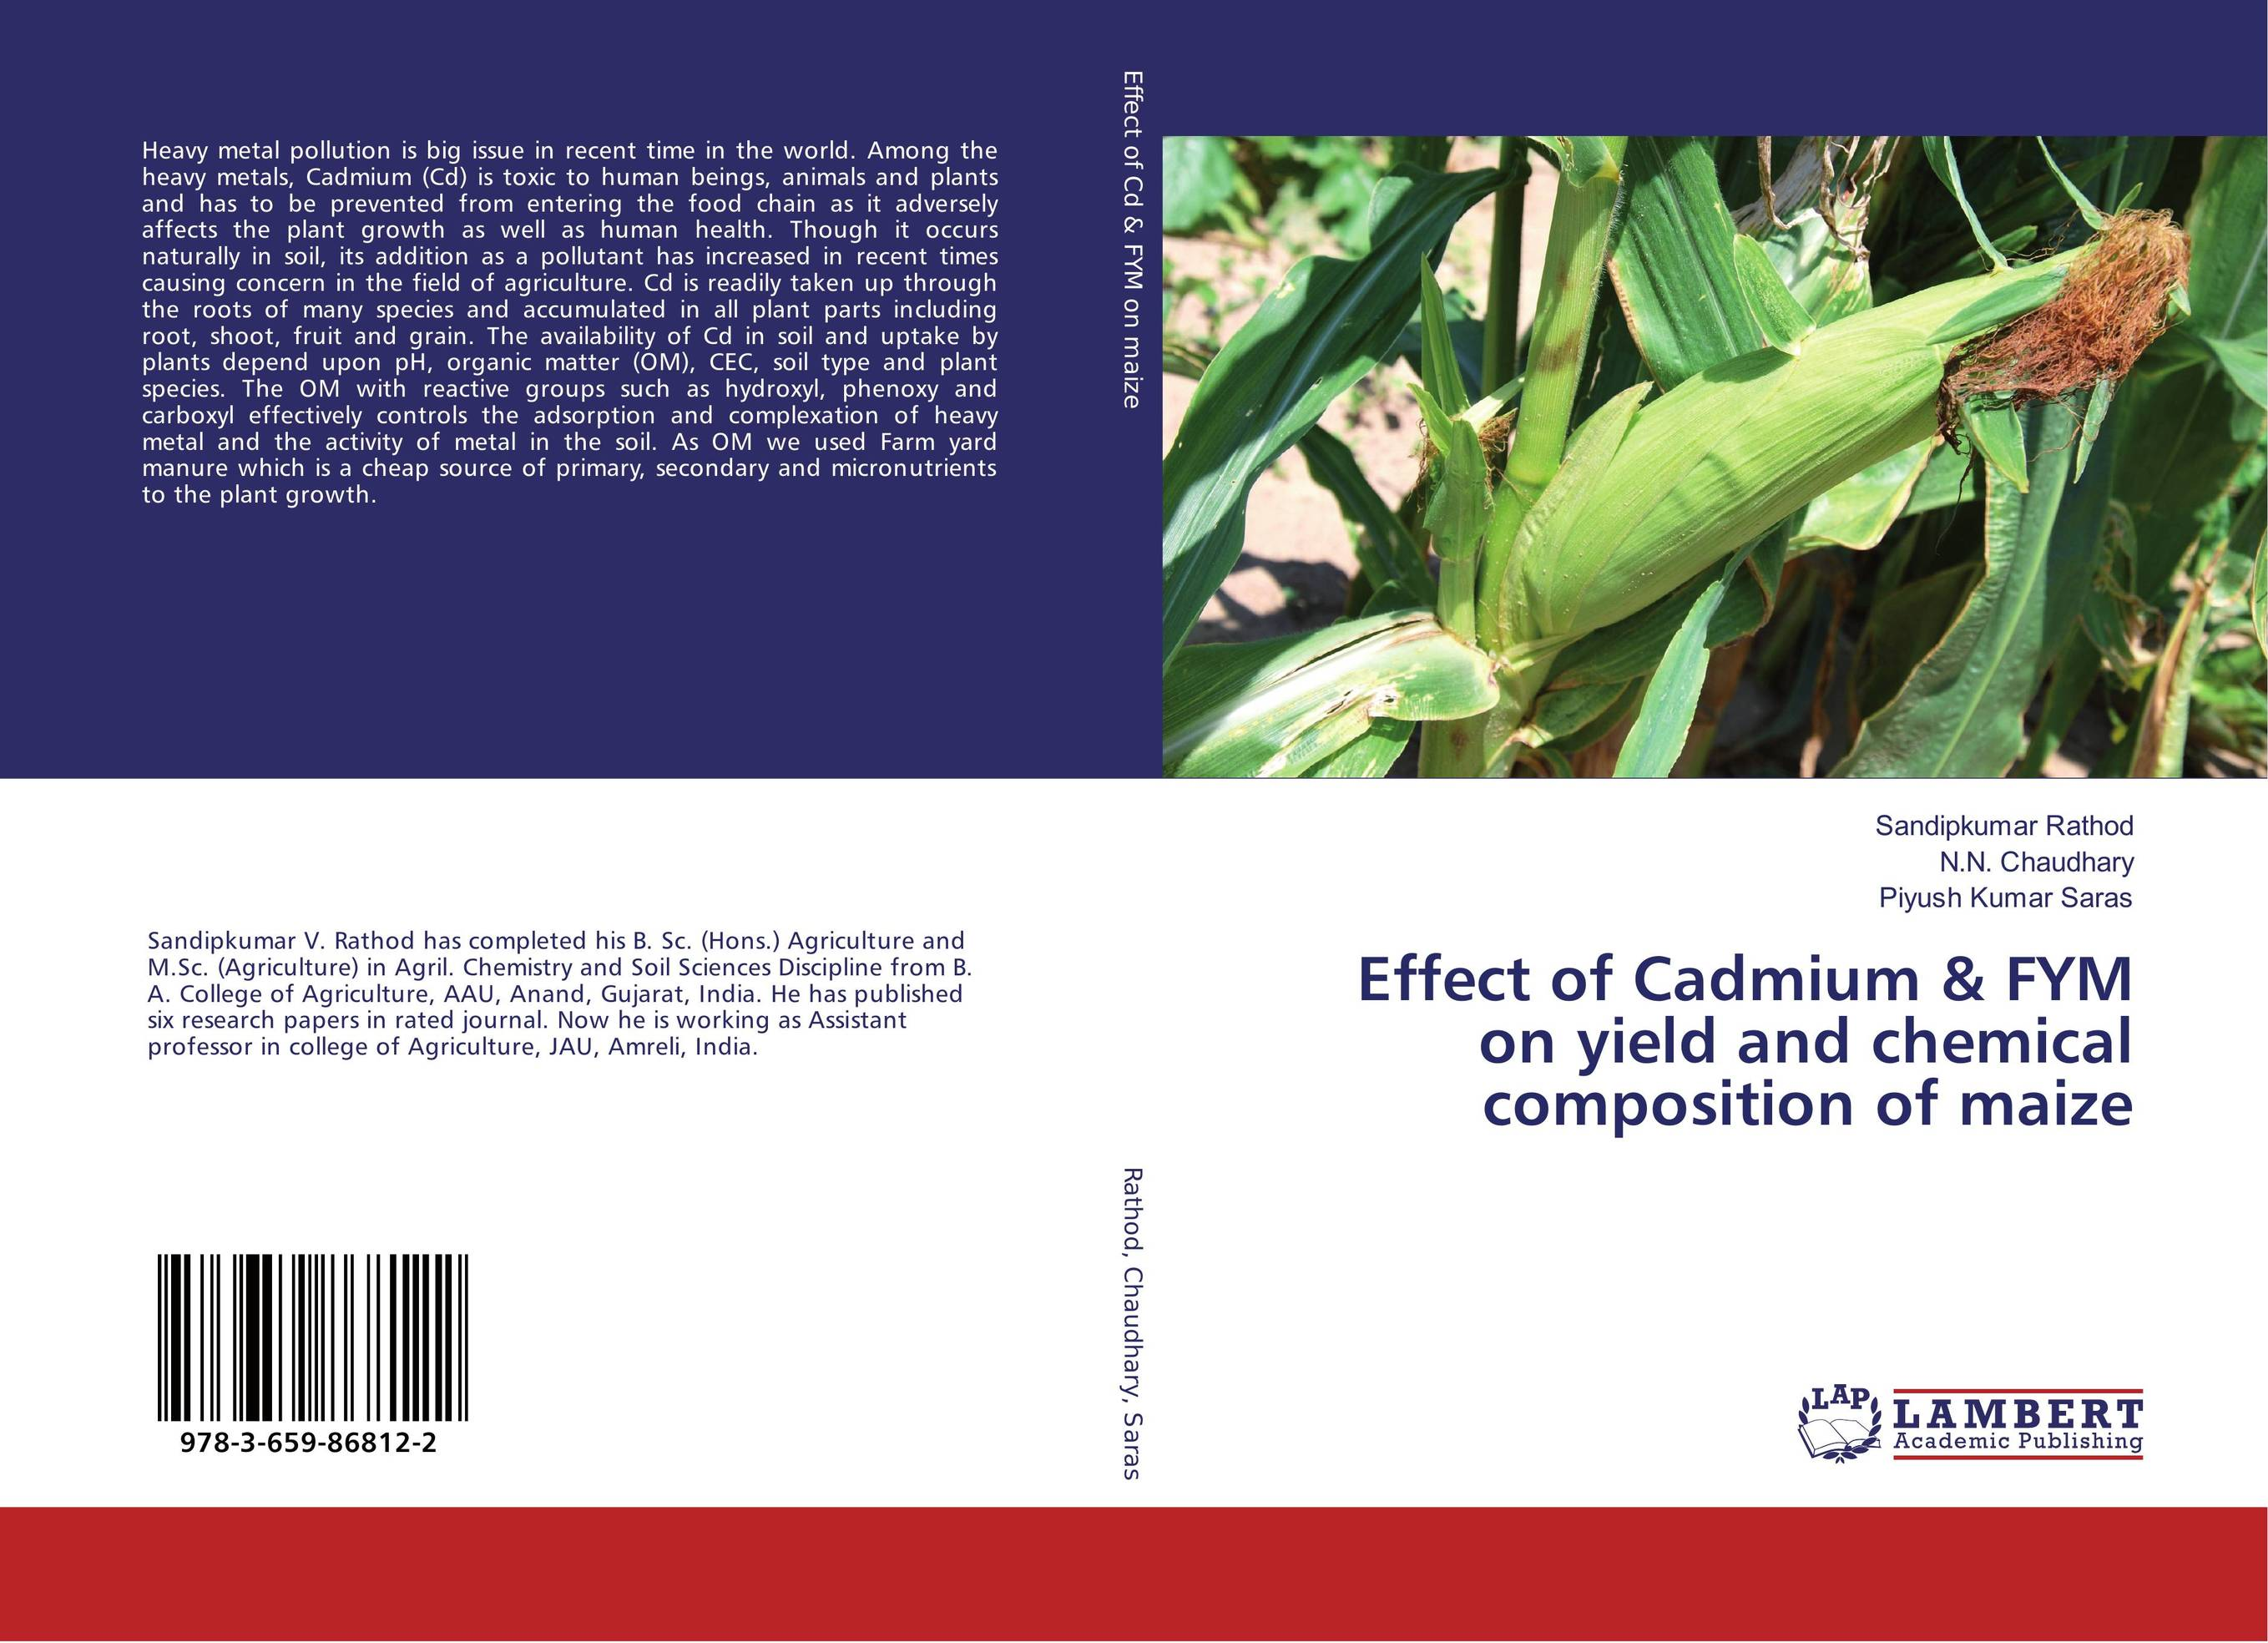 Effect of Cadmium & FYM on yield and chemical composition of maize cadmium from earth crust to fish tissues